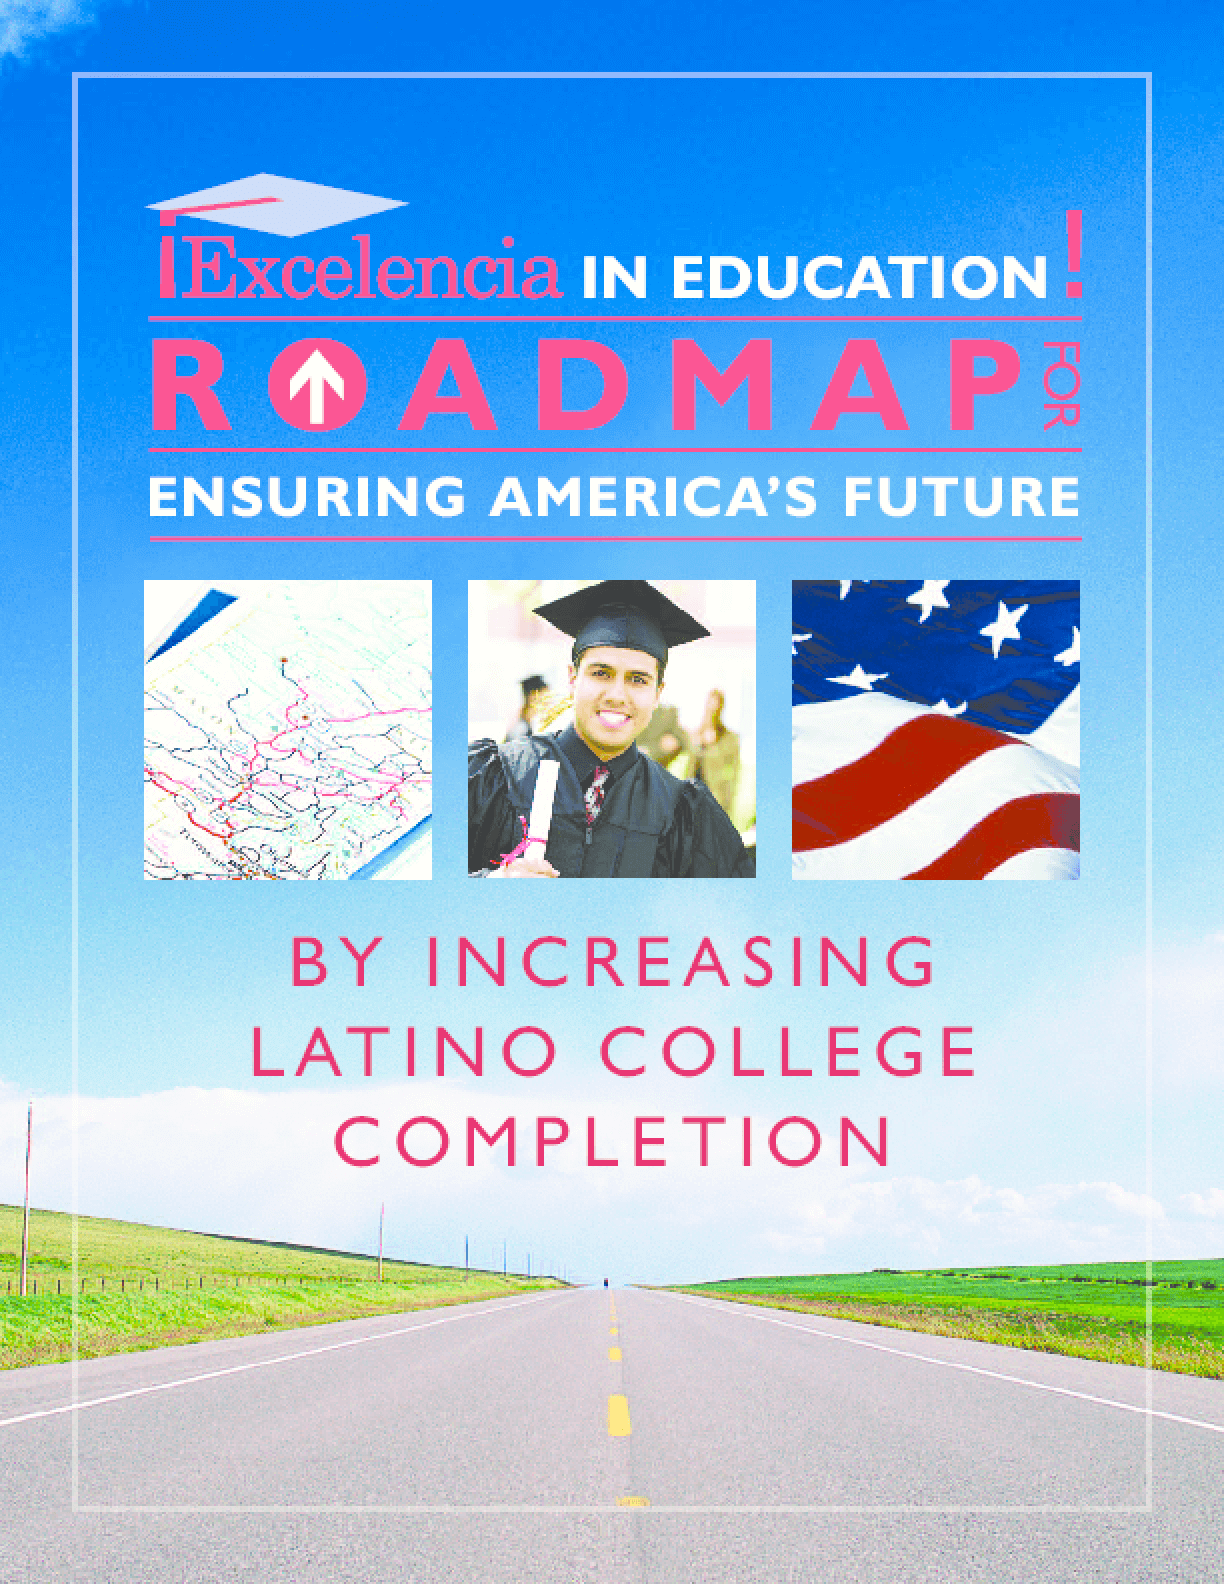 Roadmap for Ensuring America's Future by Increasing Latino College Completion